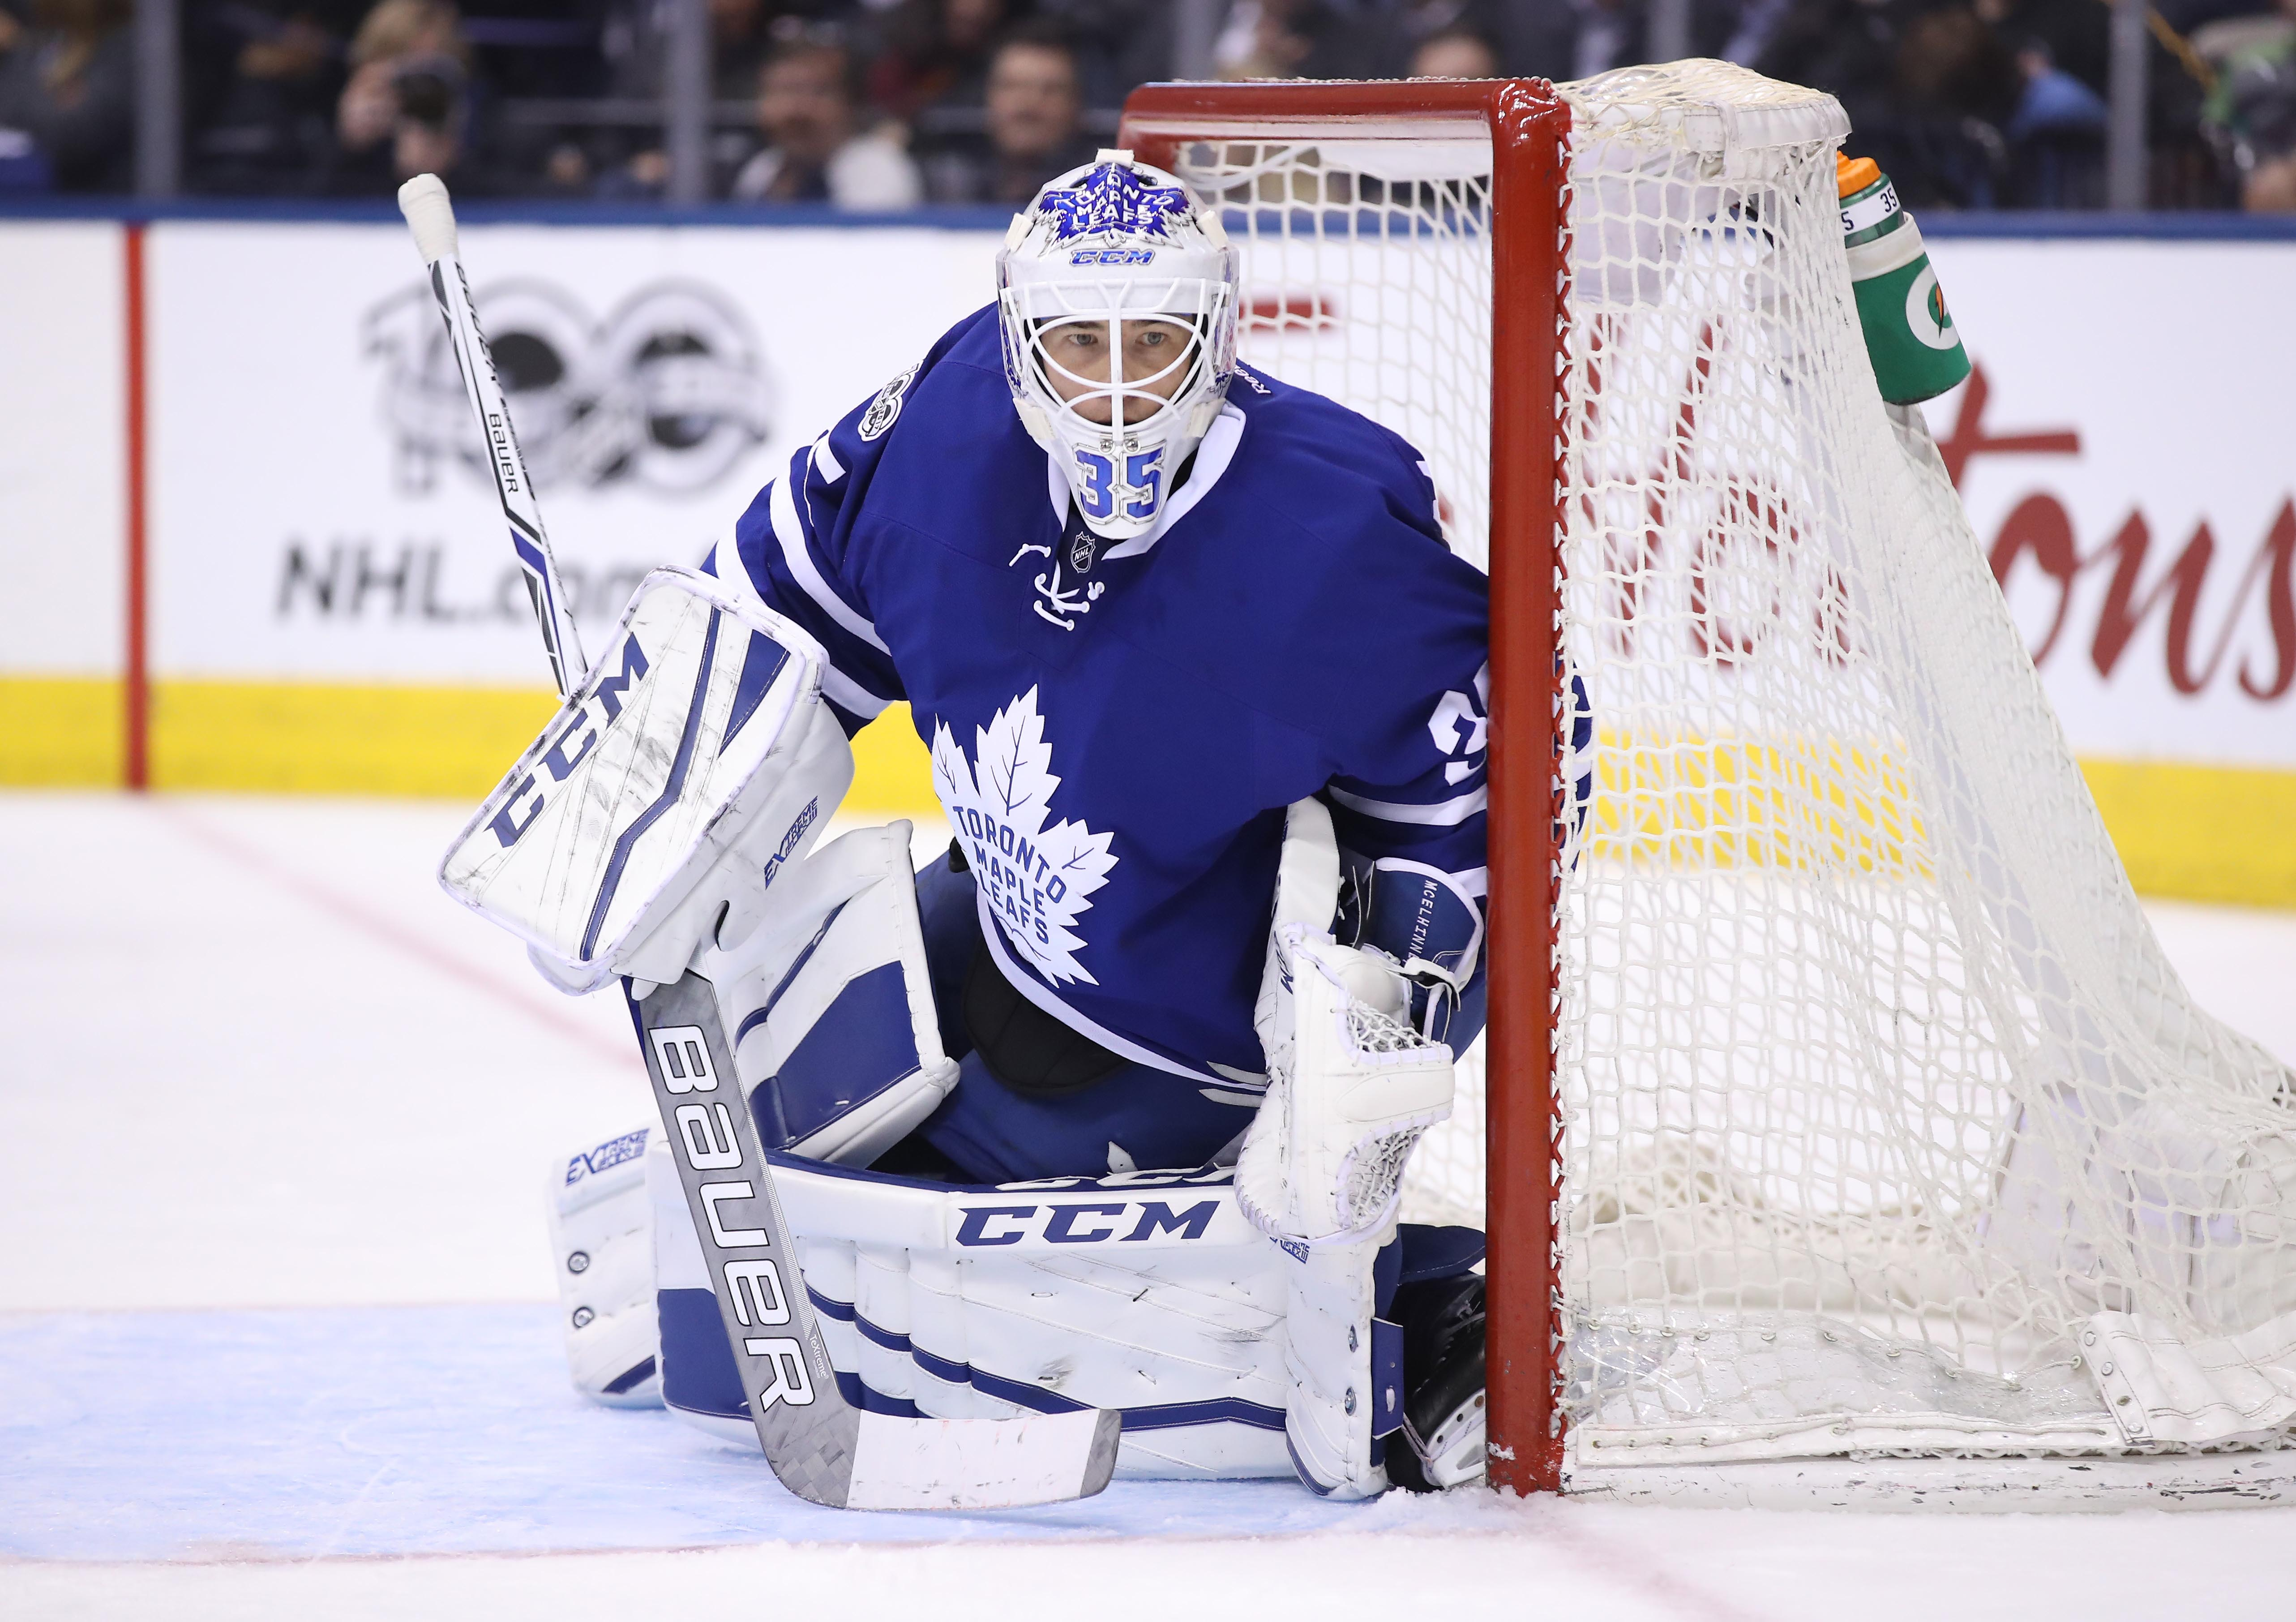 9967196-nhl-new-jersey-devils-at-toronto-maple-leafs